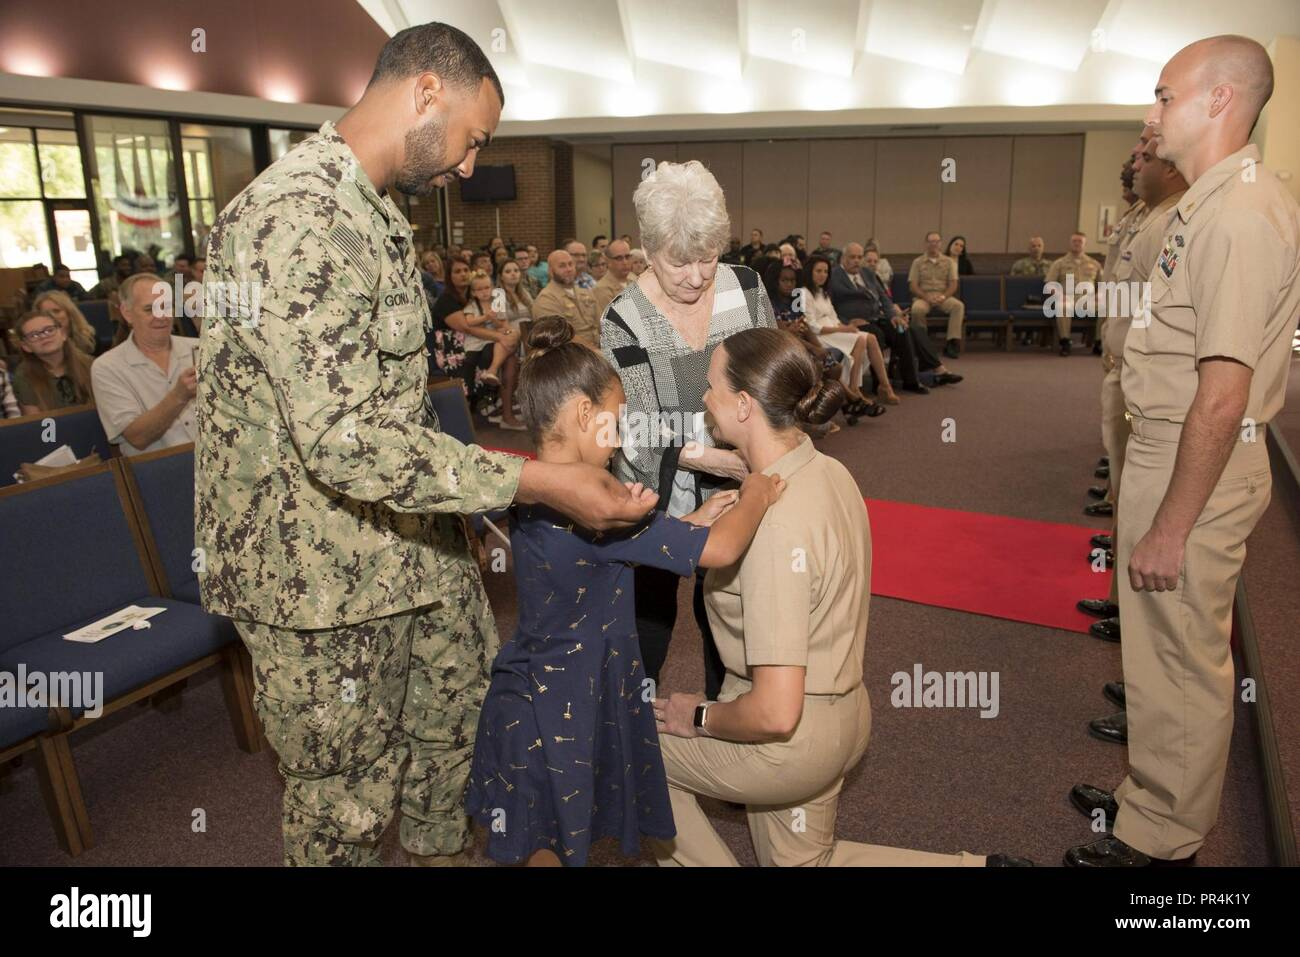 KINGS BAY, Georgia (Sept. 14, 2018) Chief Master at Arms Tara Gonga is pinned with her anchors by her family during Naval Submarine Base Kings Bay's 2018 chief petty officer pinning ceremony.  The base is home to six of the Ohio-class ballistic-missile submarines that make up the most survivable leg of the nuclear missile triad. - Stock Image